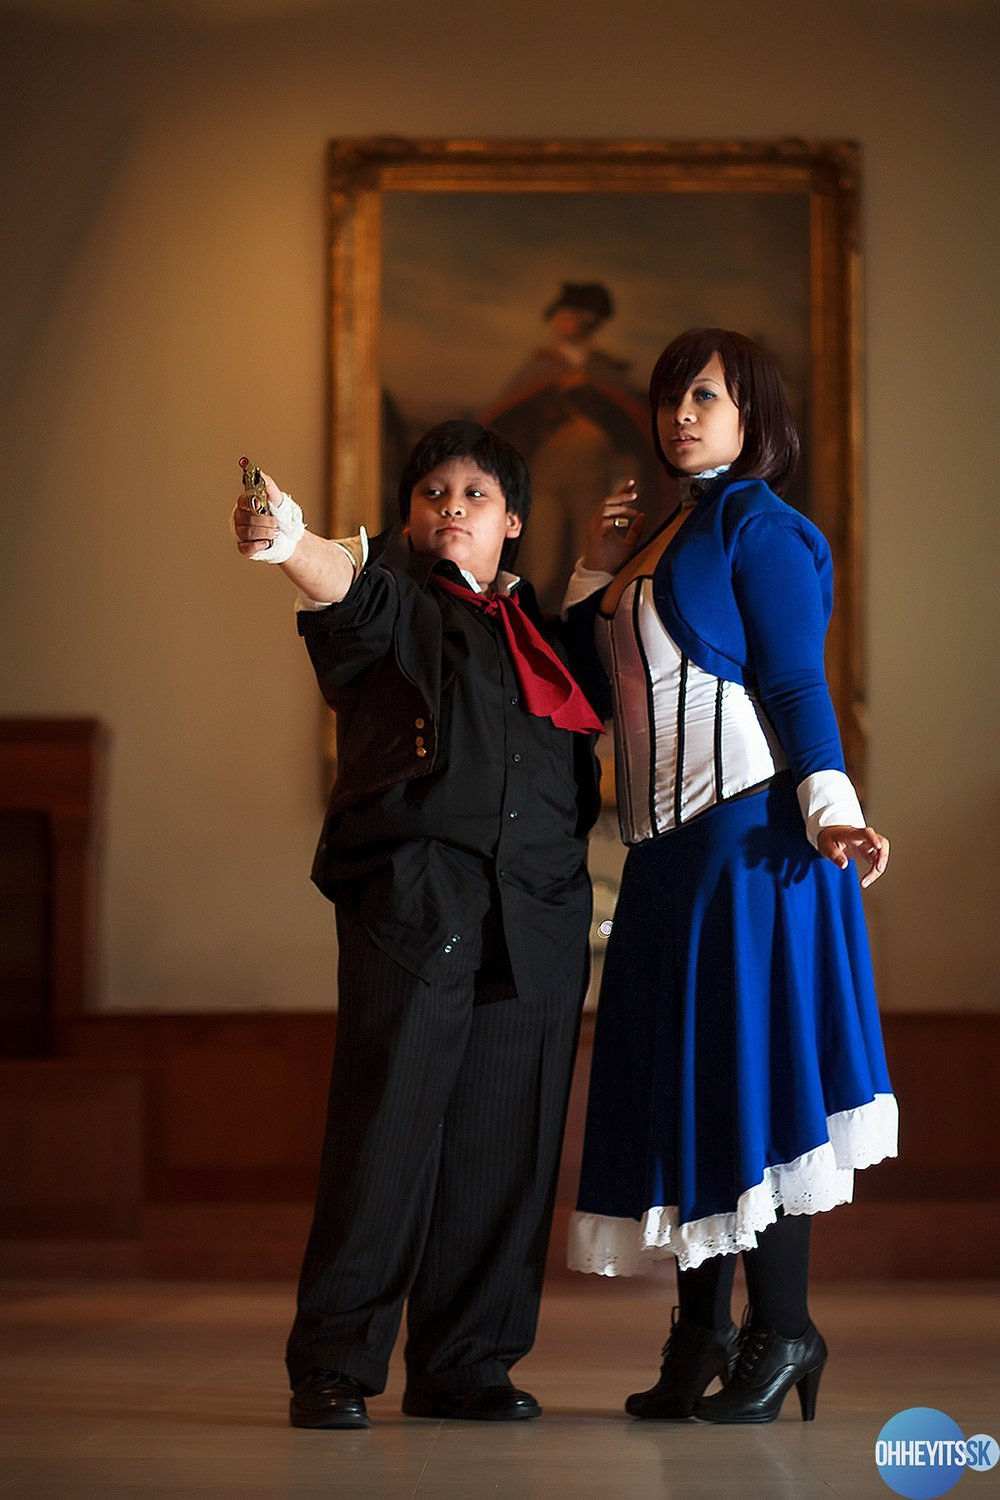 Elizabeth & Booker (worn by my brother!) (Bioshock: Infinite) photo: Some Kid / Trevor Tomlinson